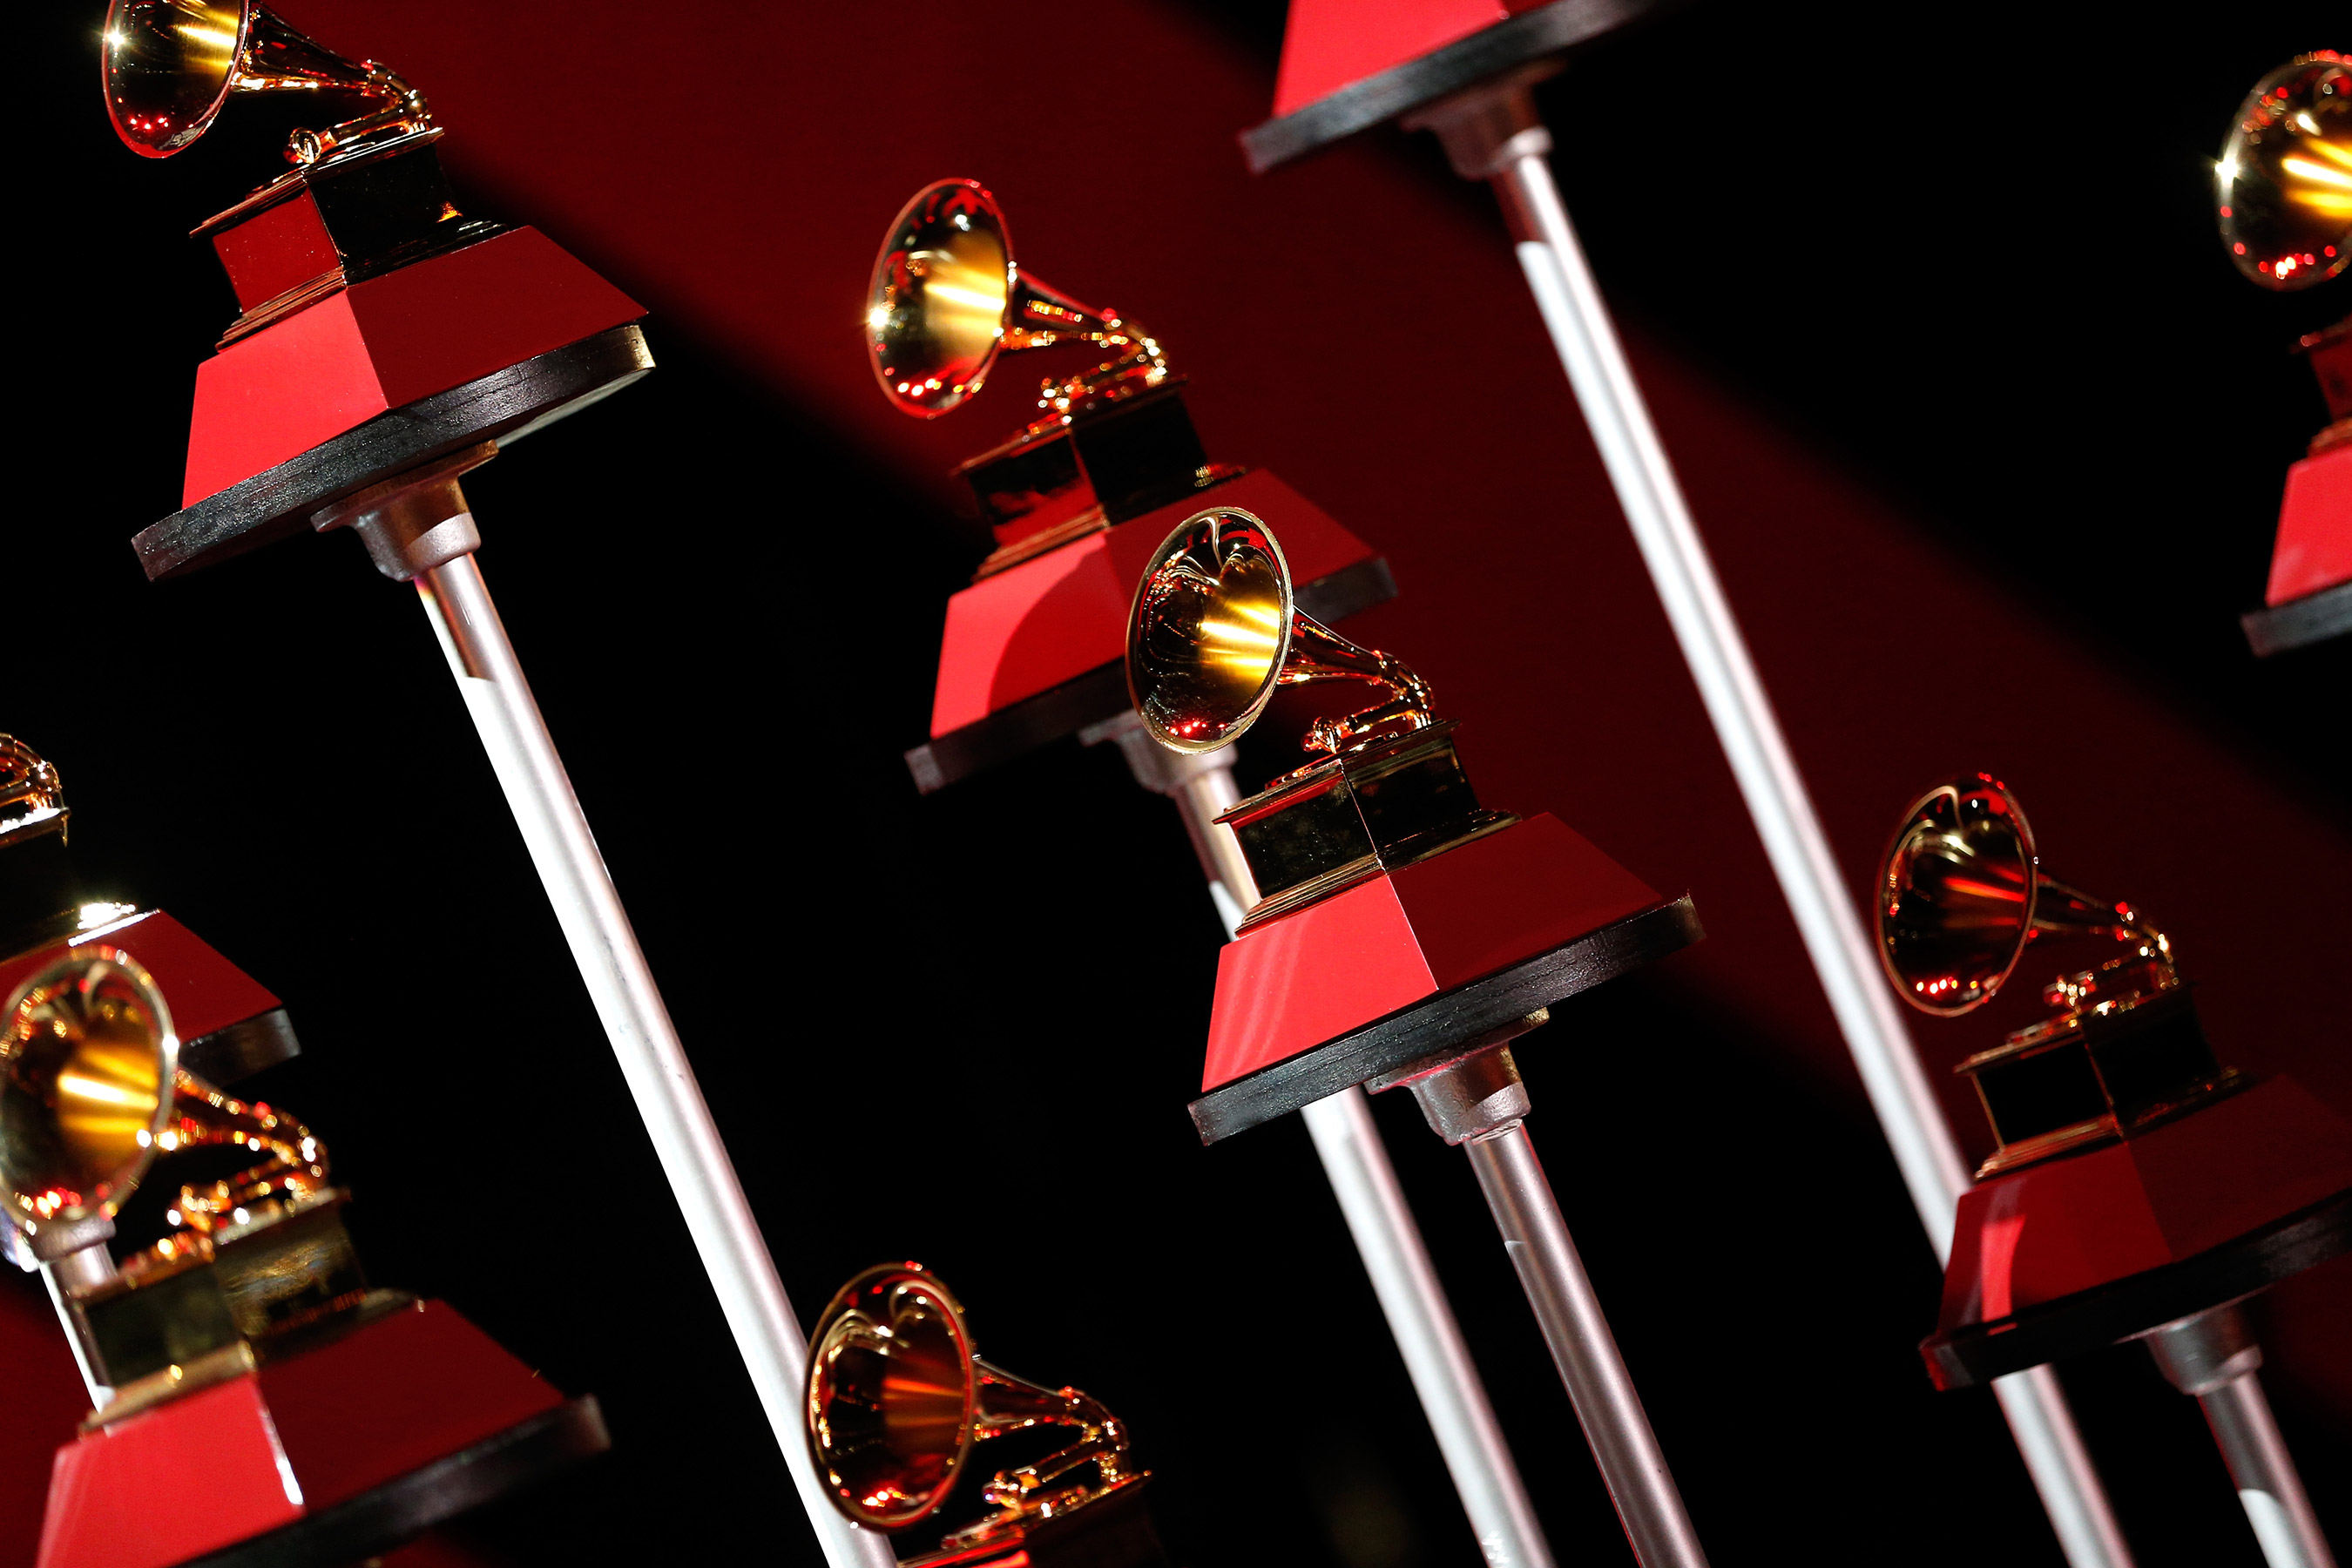 Grammy Awards 2017 winners